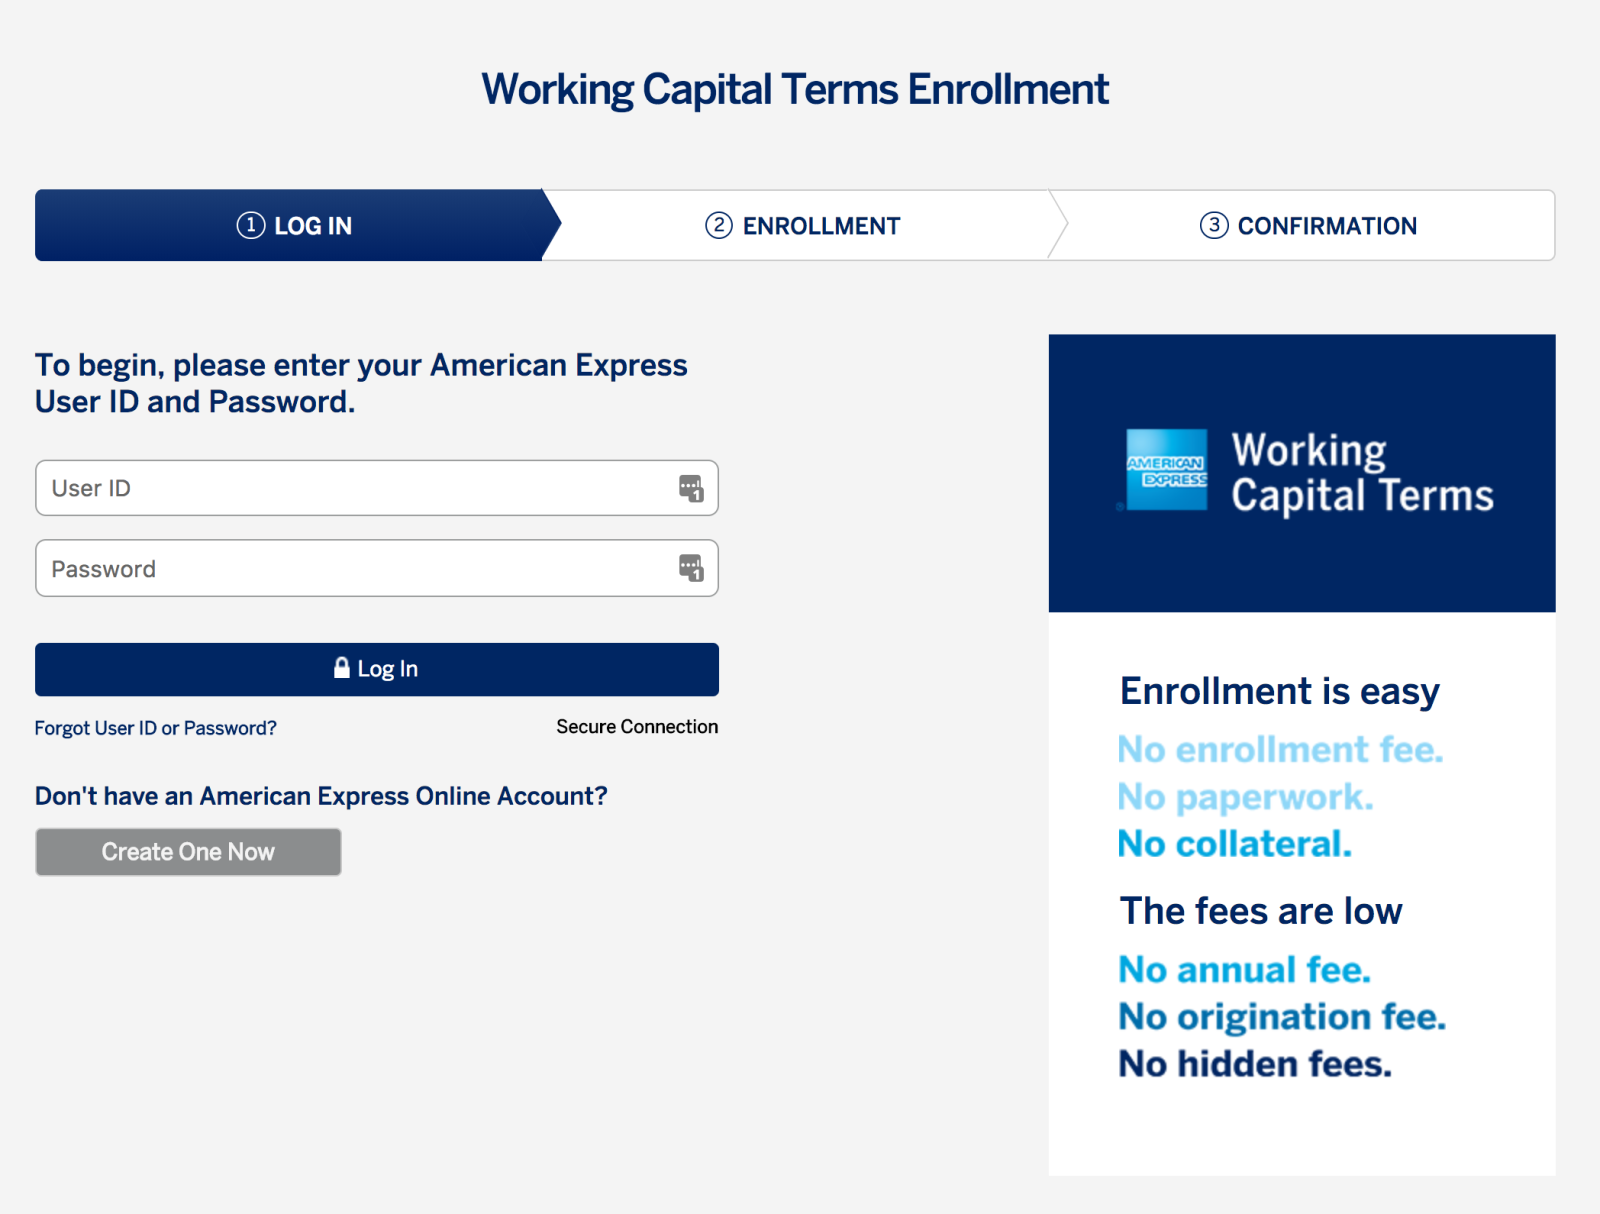 Screenshot showing login page for American Express Online Account